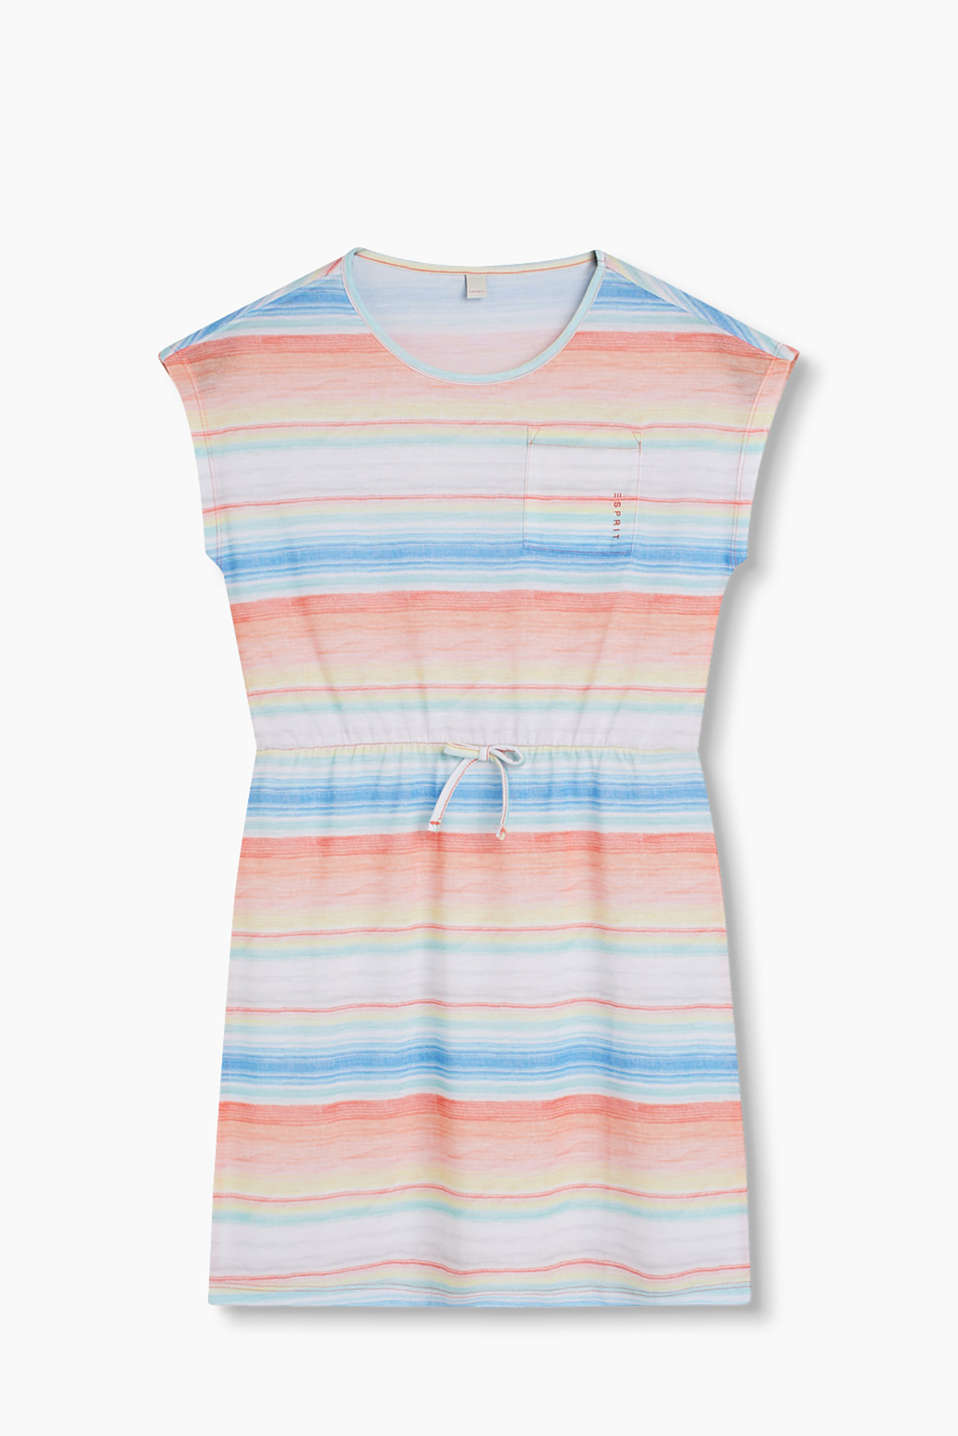 Bow detail T-shirt dress with an elasticated waistband and brightly coloured stripes